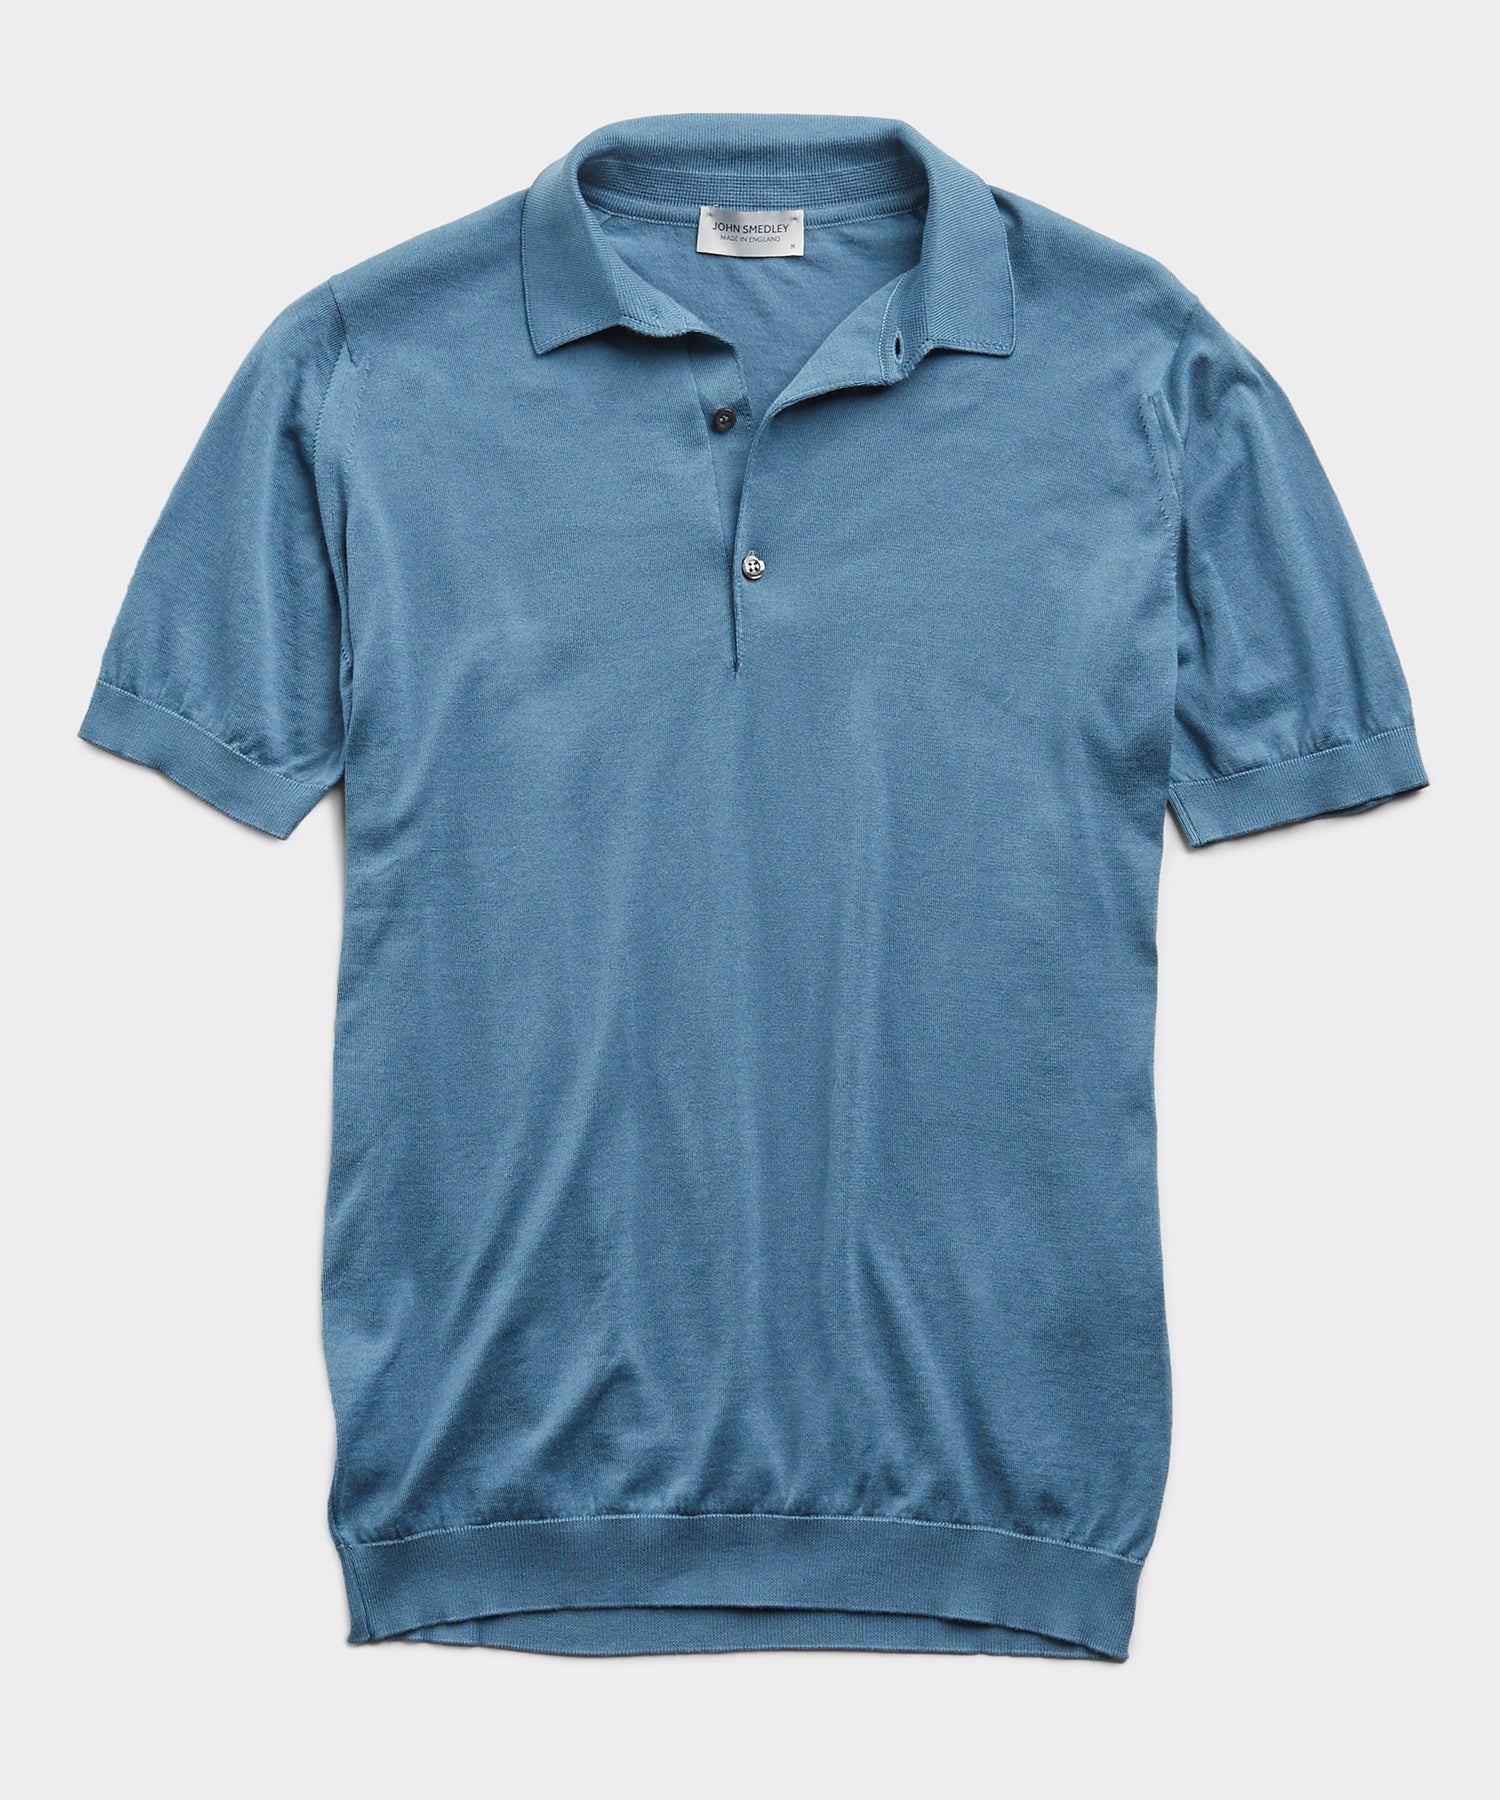 John Smedley Adrian Sea Island Cotton Polo in Blue Wash